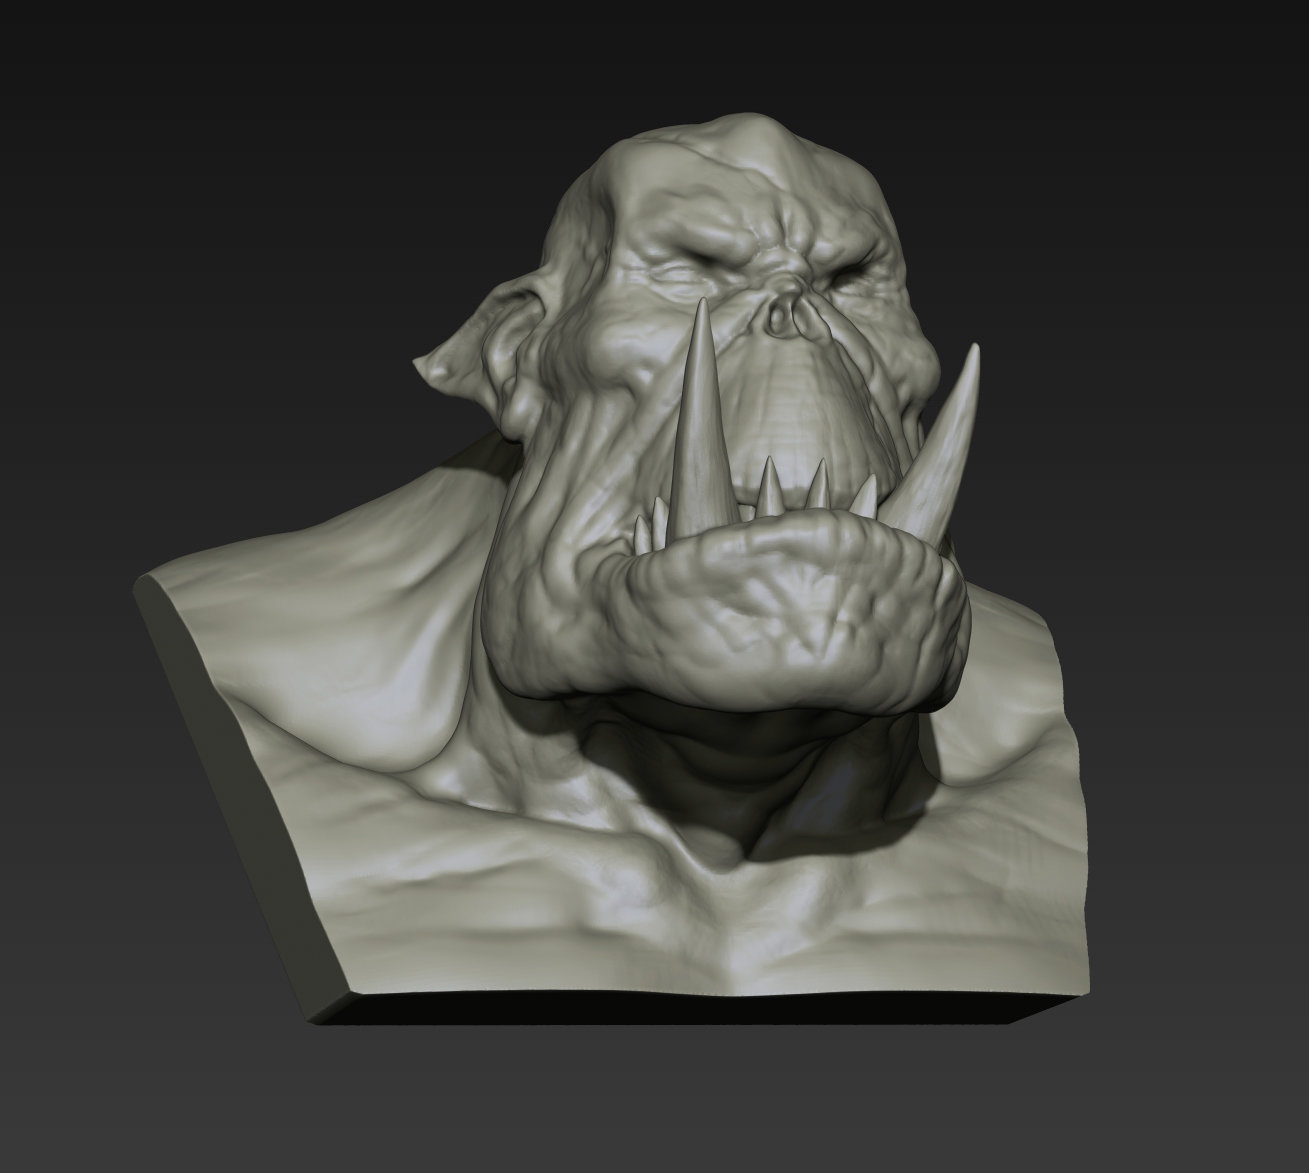 Toby hynes orc bust sketch 05